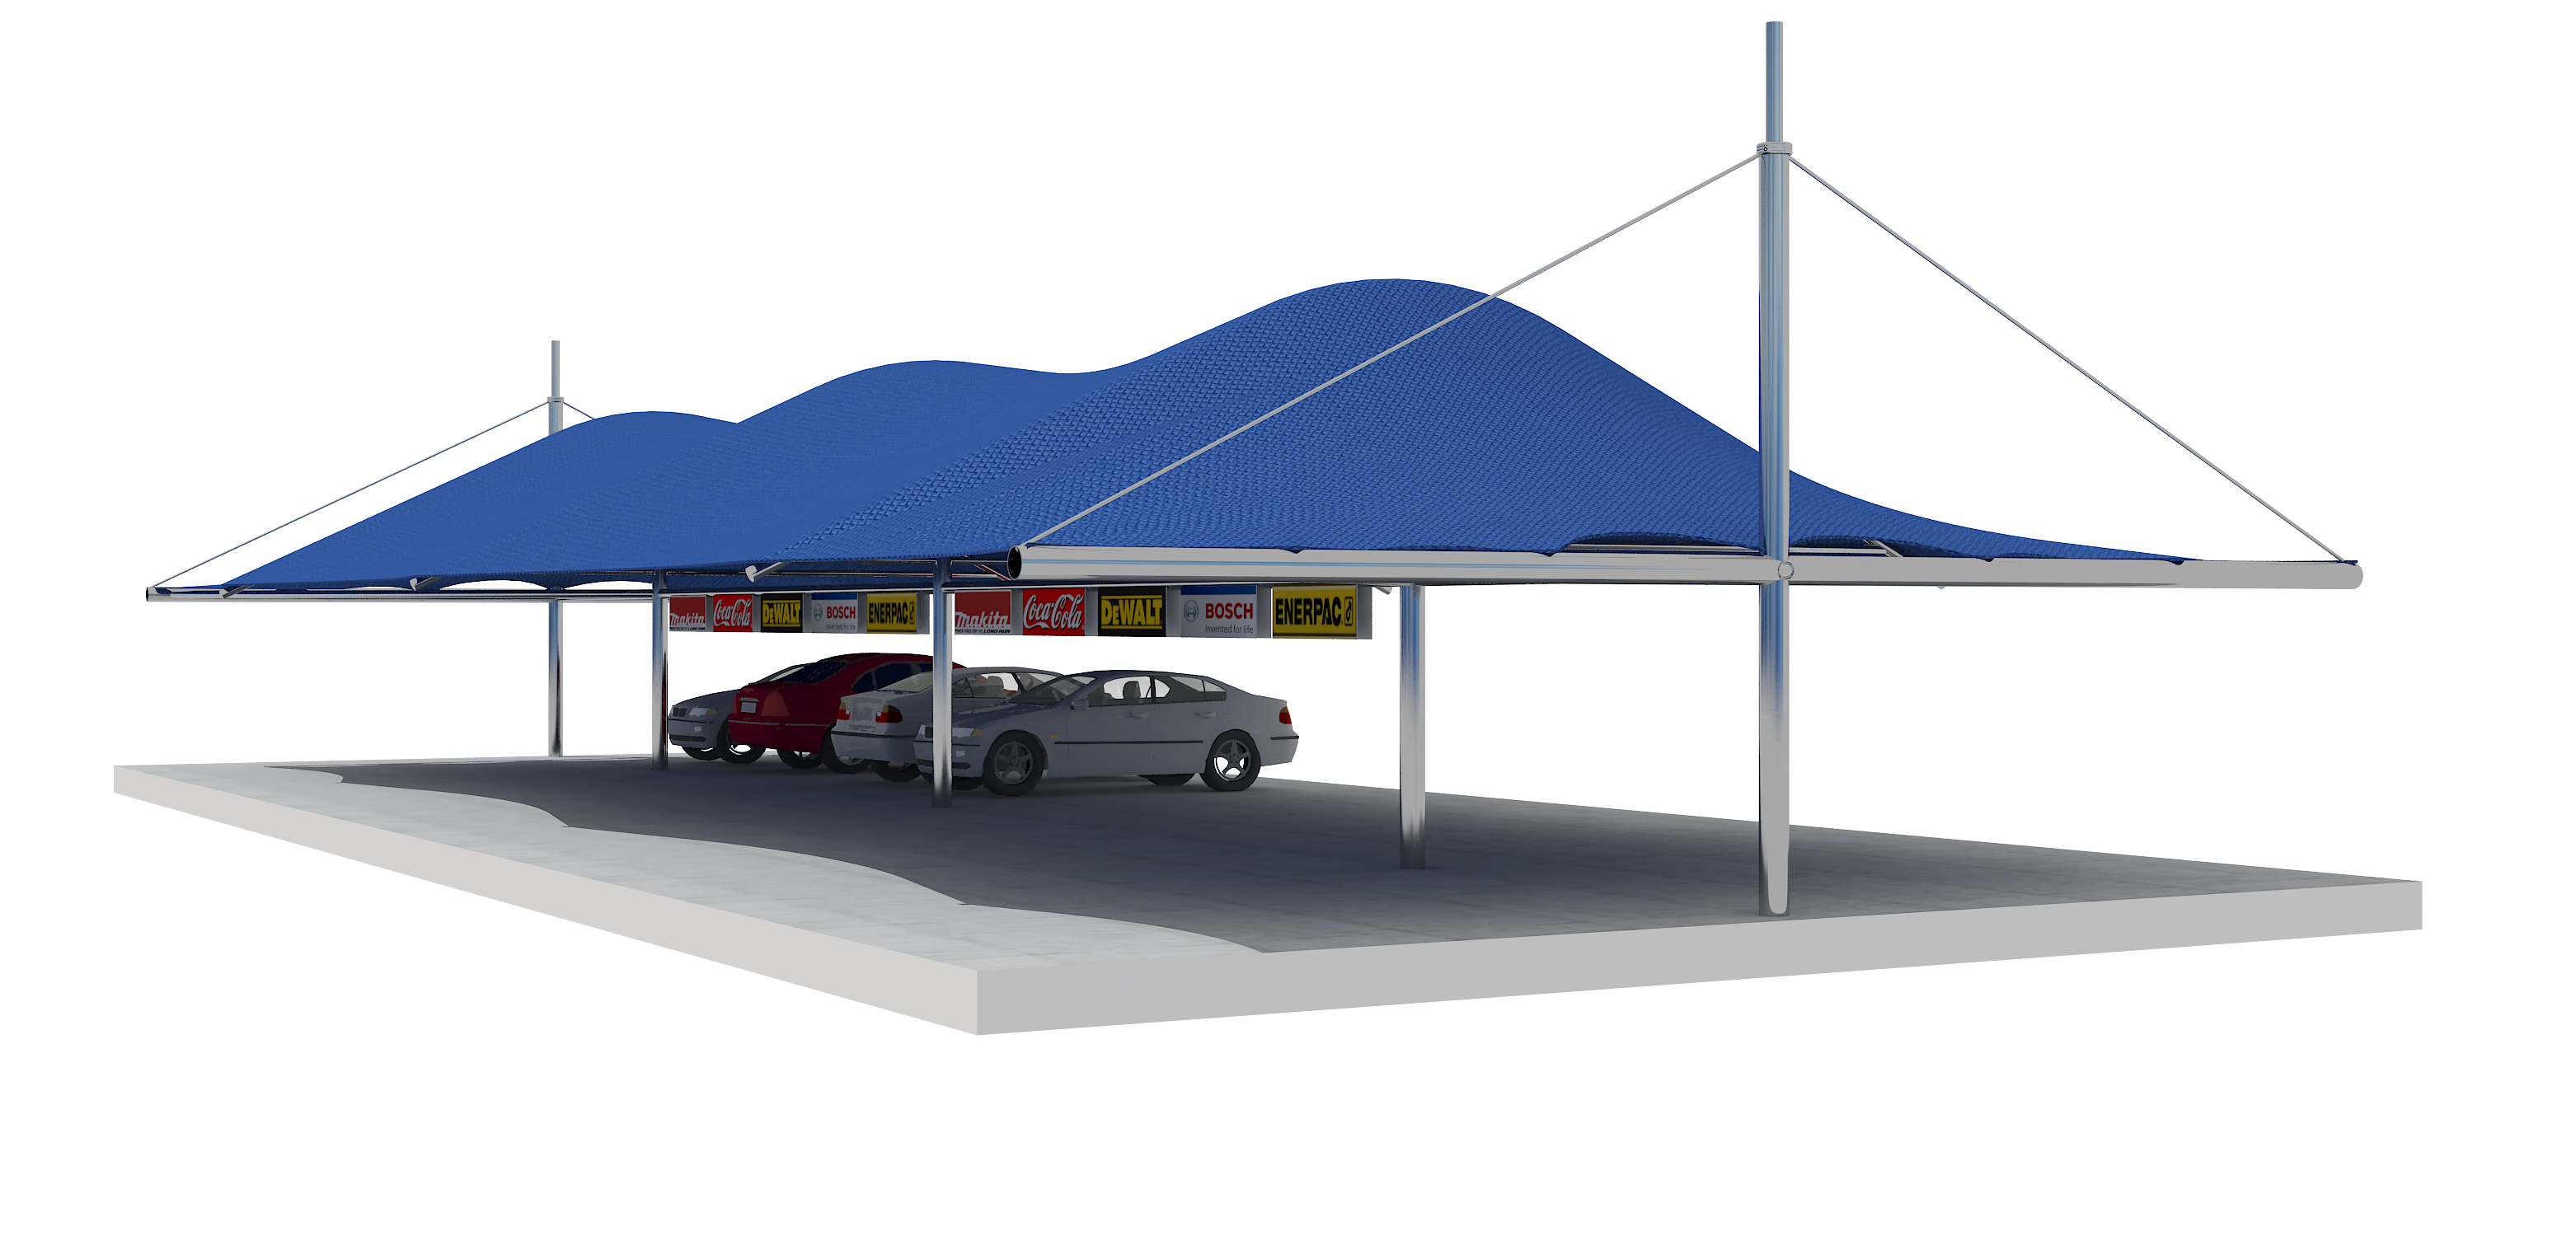 archeo parking tensostructures india roof arched design sheds sprech models car shed sam products